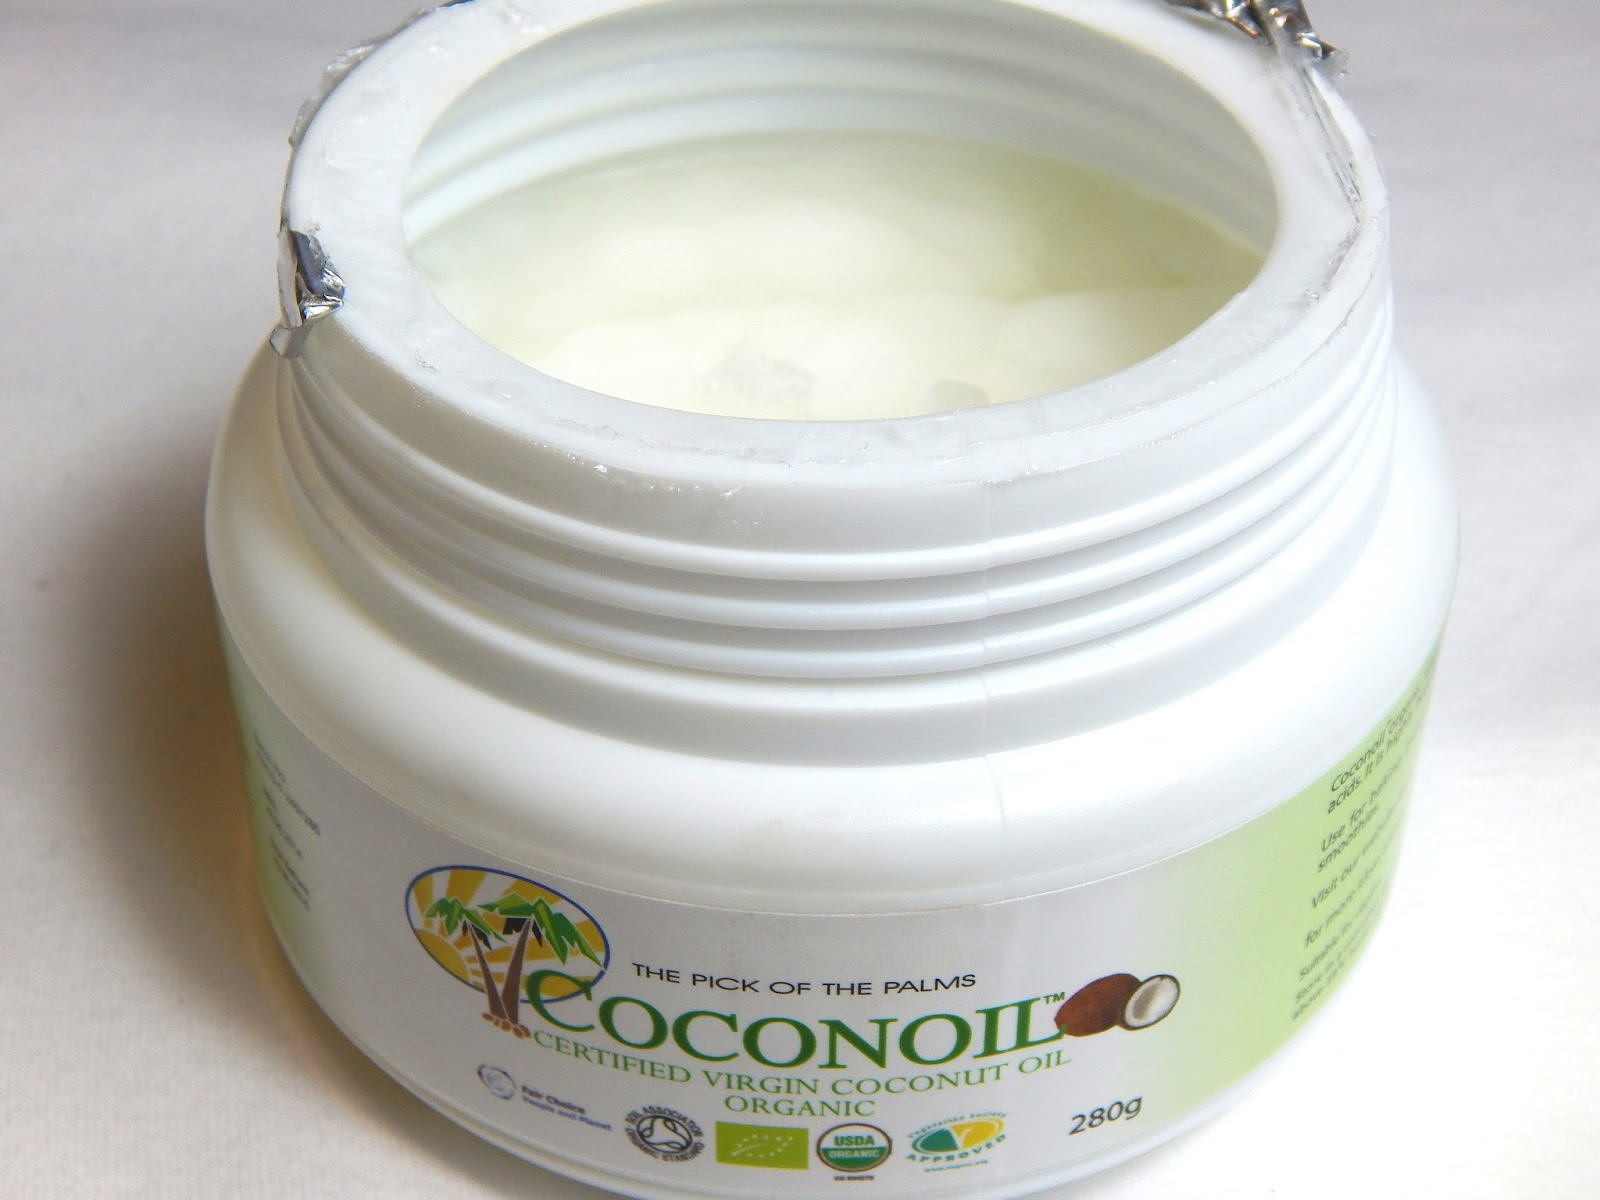 Coconoil, georgina grogan, shemightbeloved